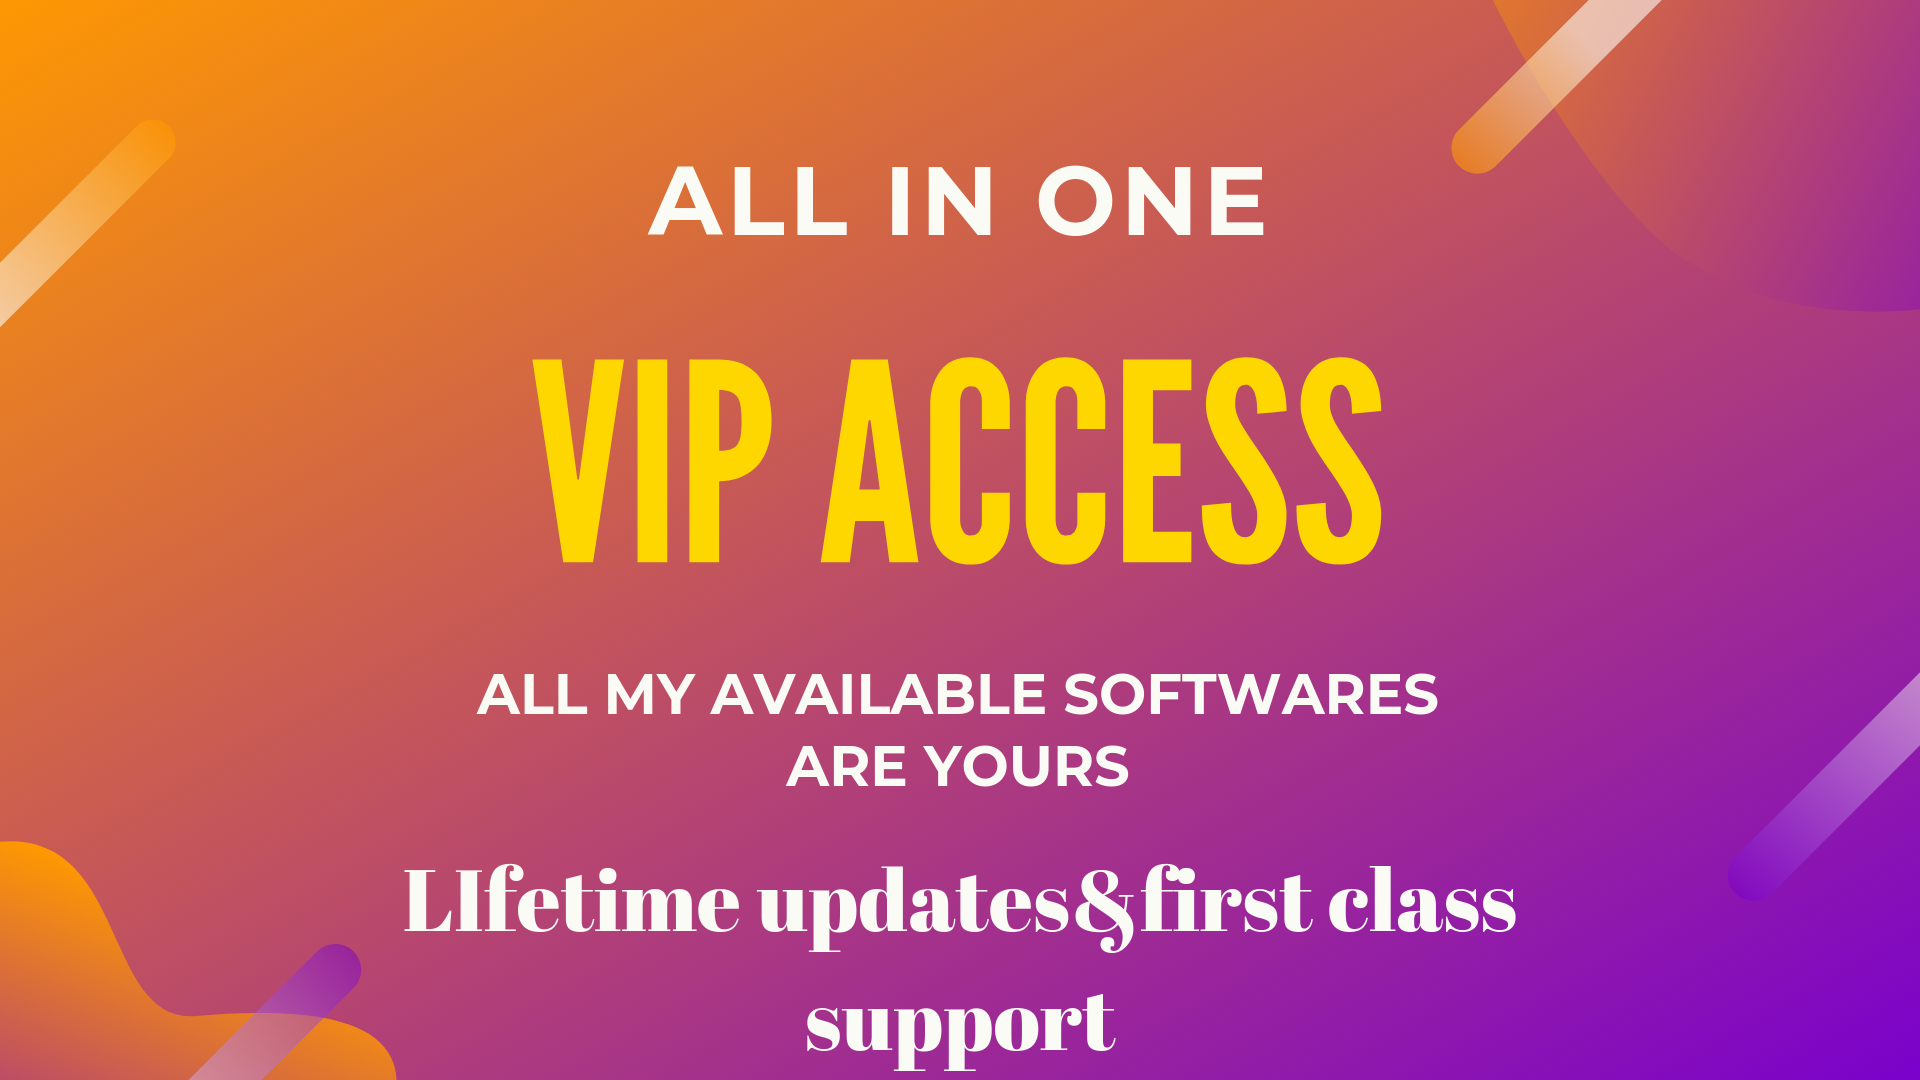 ALL in one Vip acees to all my software